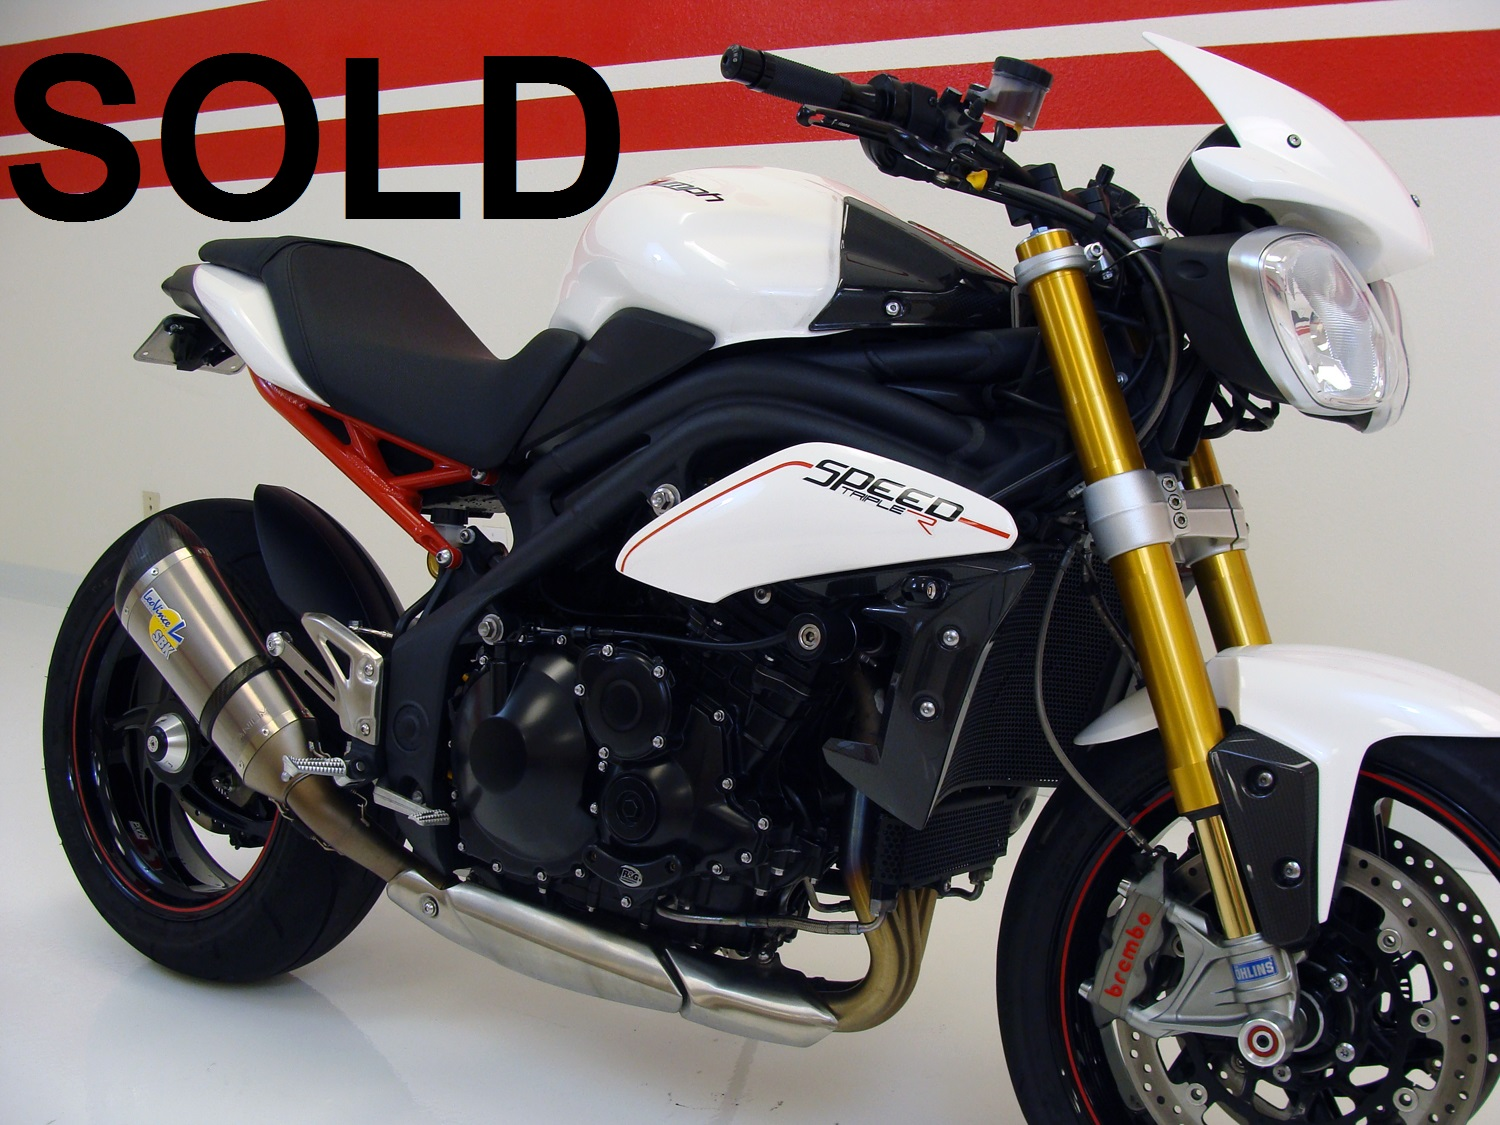 Triumph Speed Triple R (ABS)